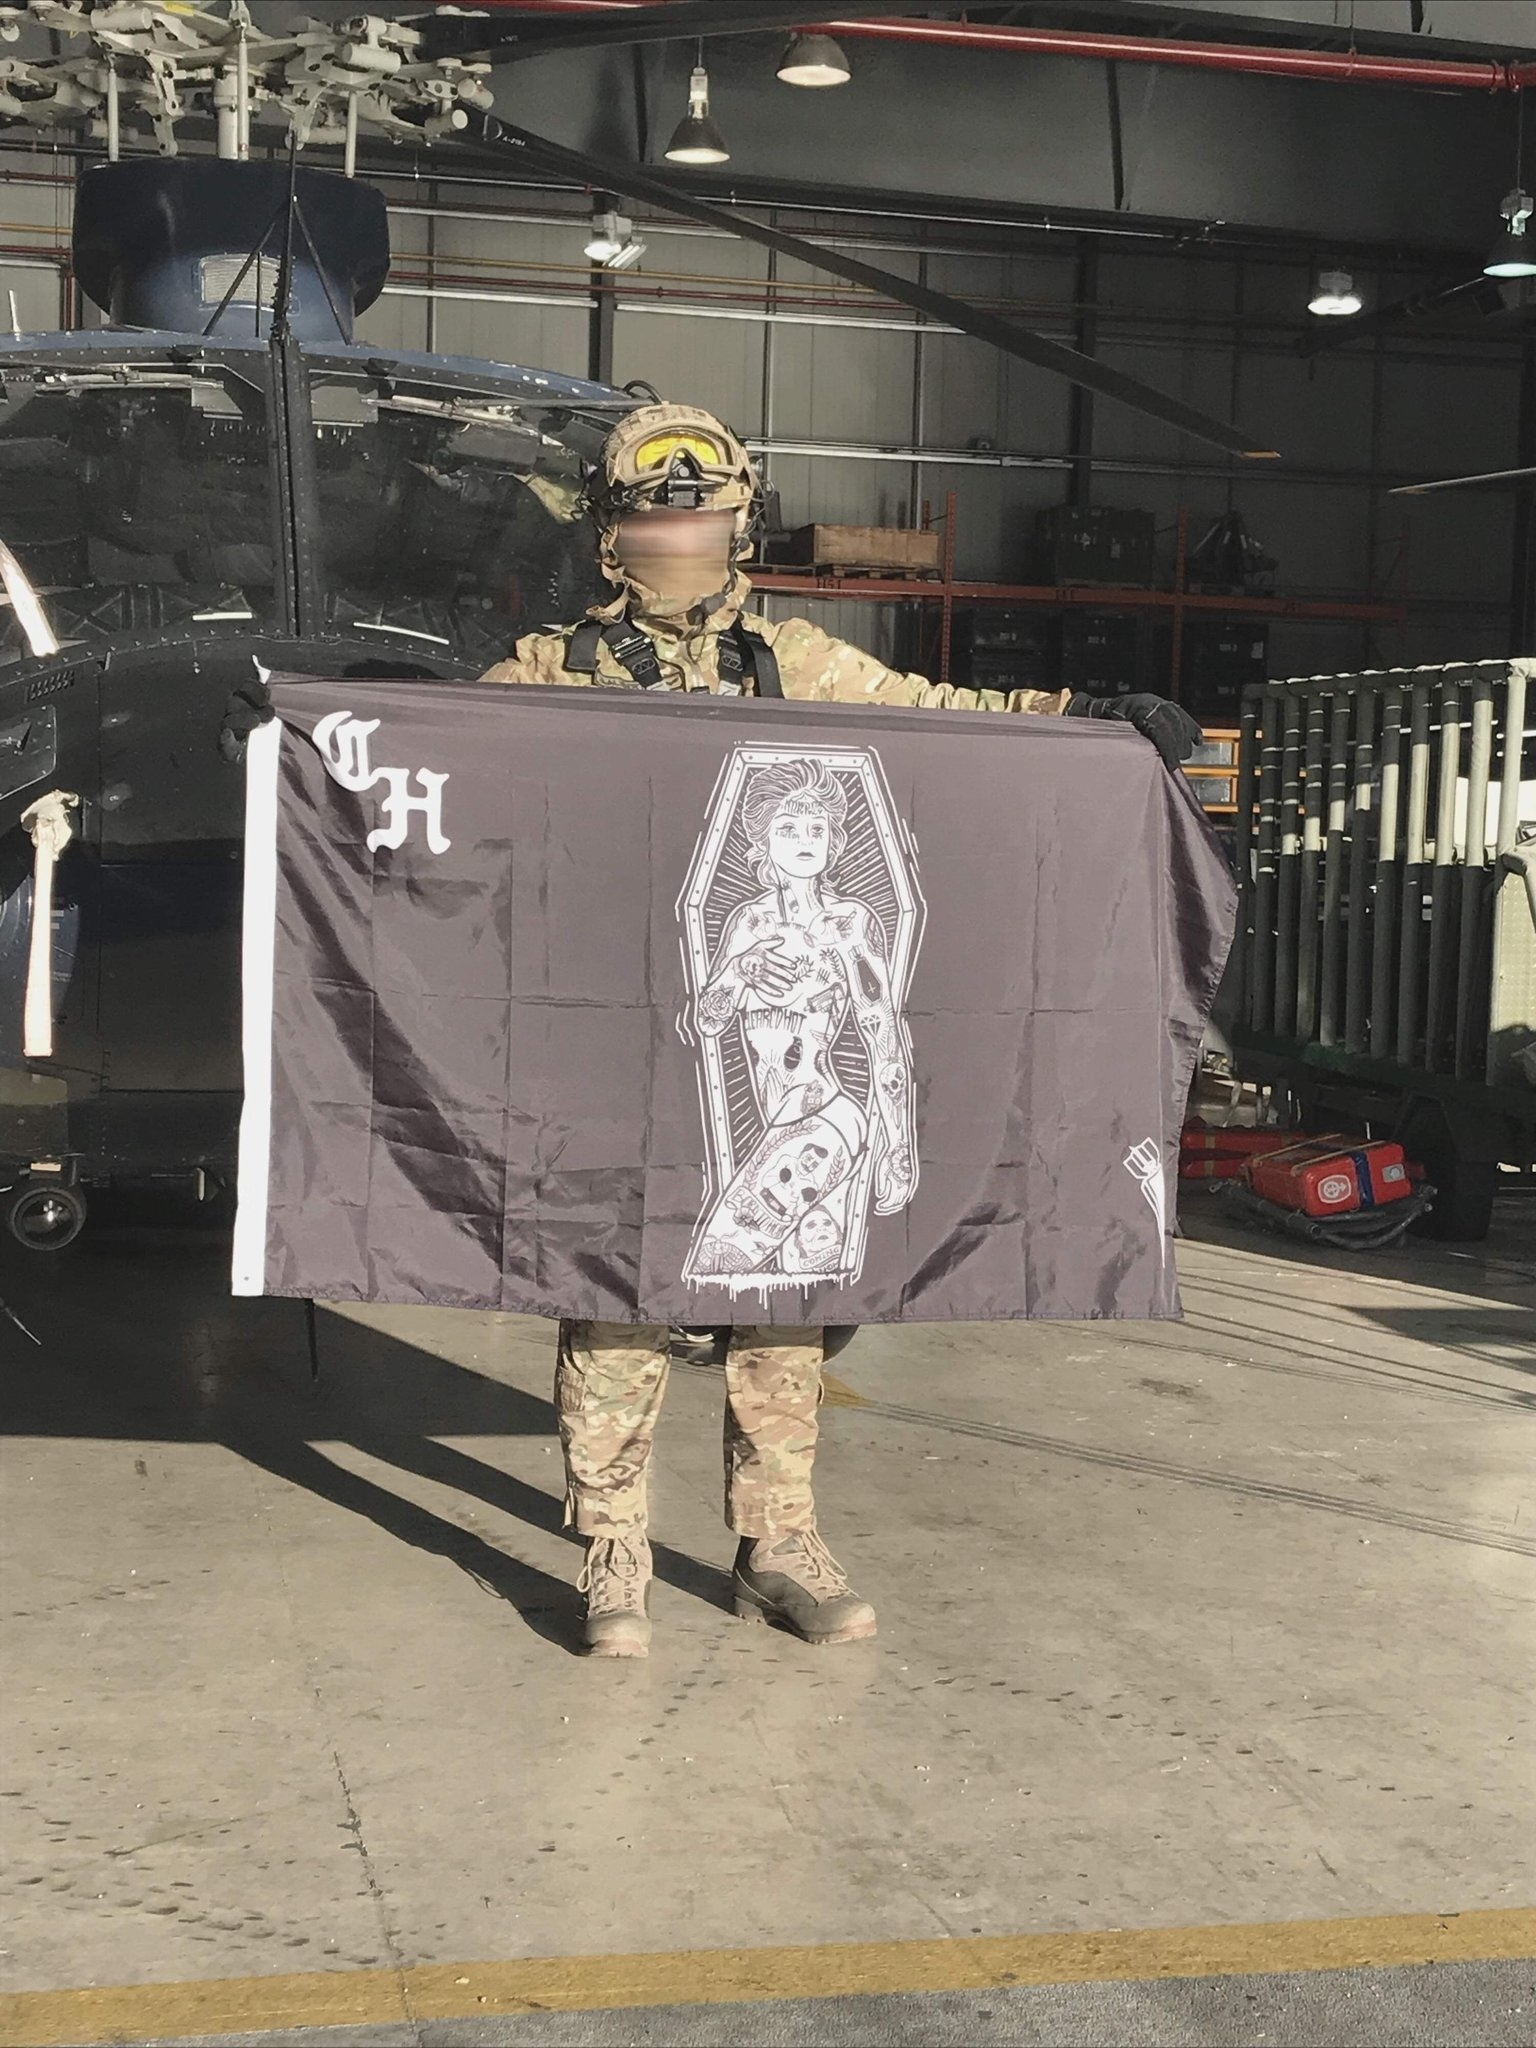 Cleared Hot Co. Cleared Hot Co. Pinup Crew Flag